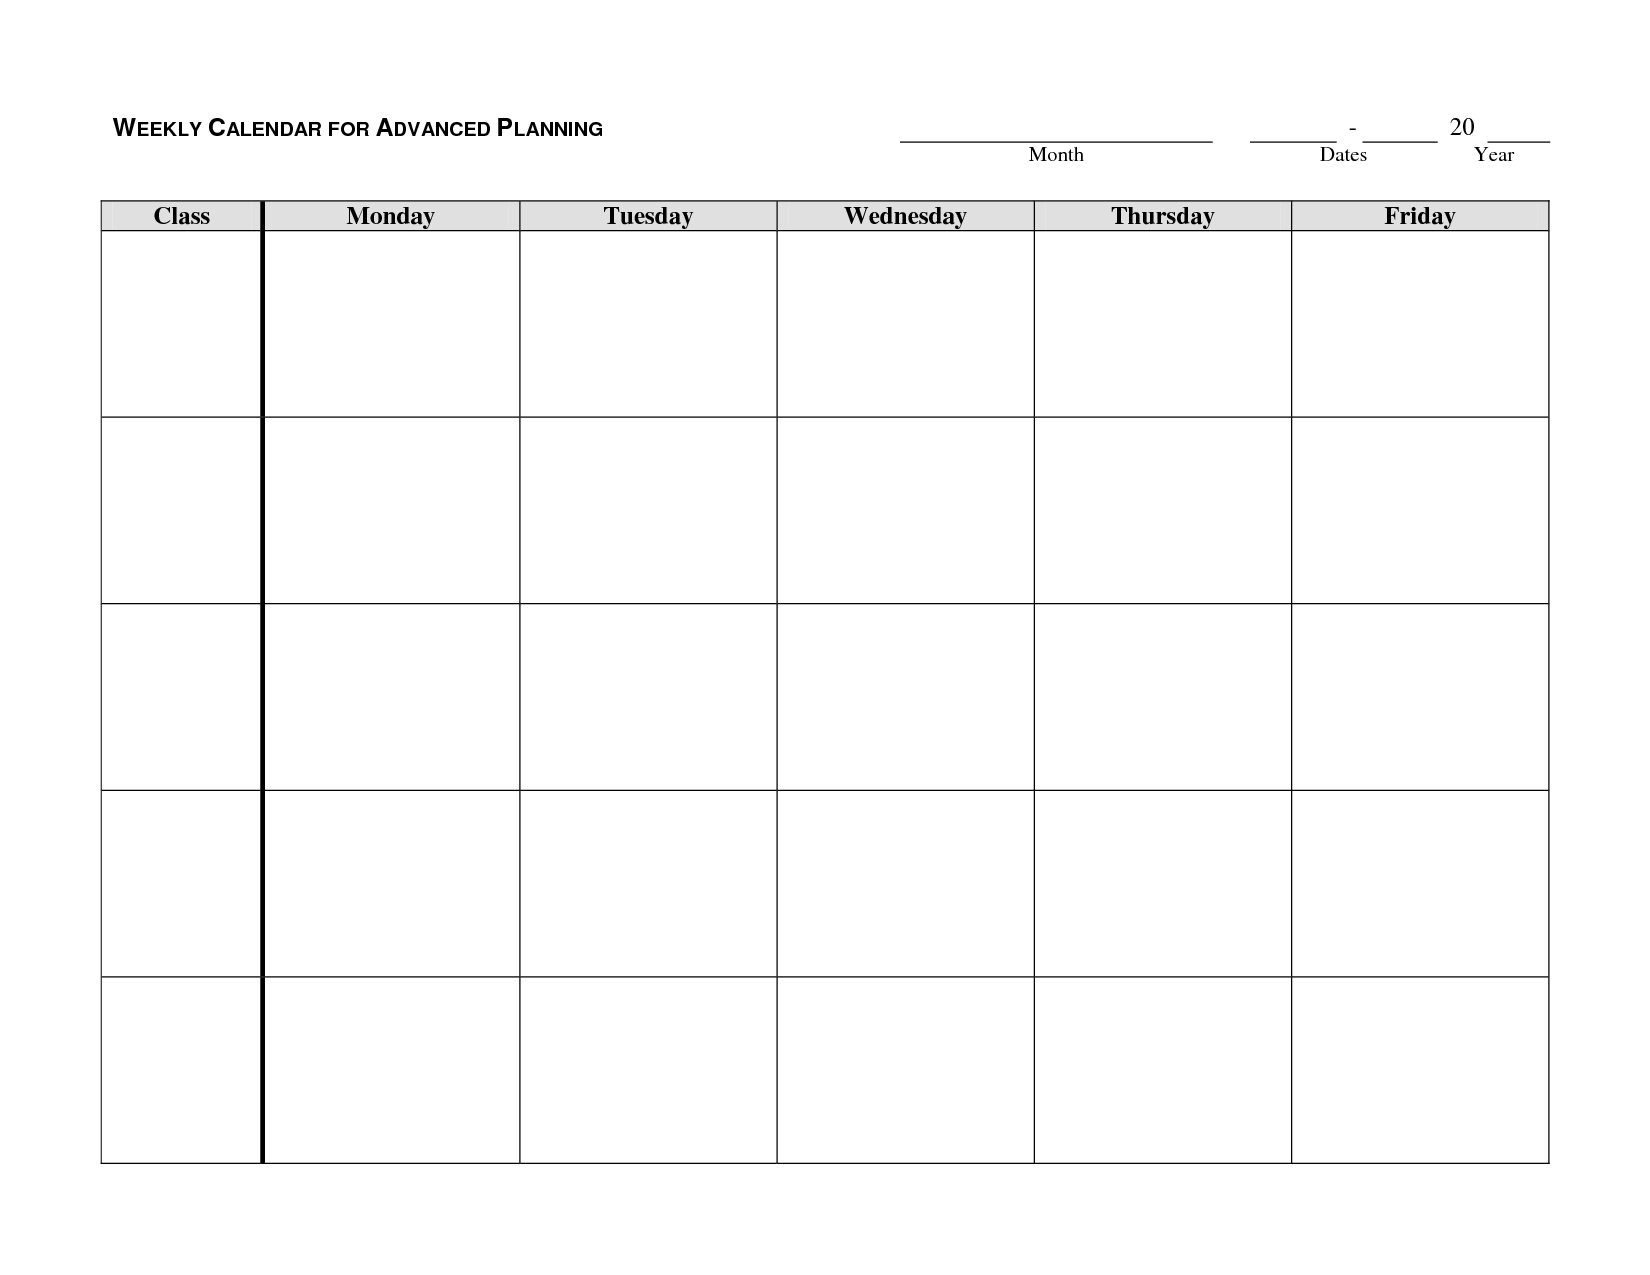 Blank Weekly Calendar Y Through Friday Schedule Template   Smorad with Blank Weekly Monday Through Friday Calendar Template